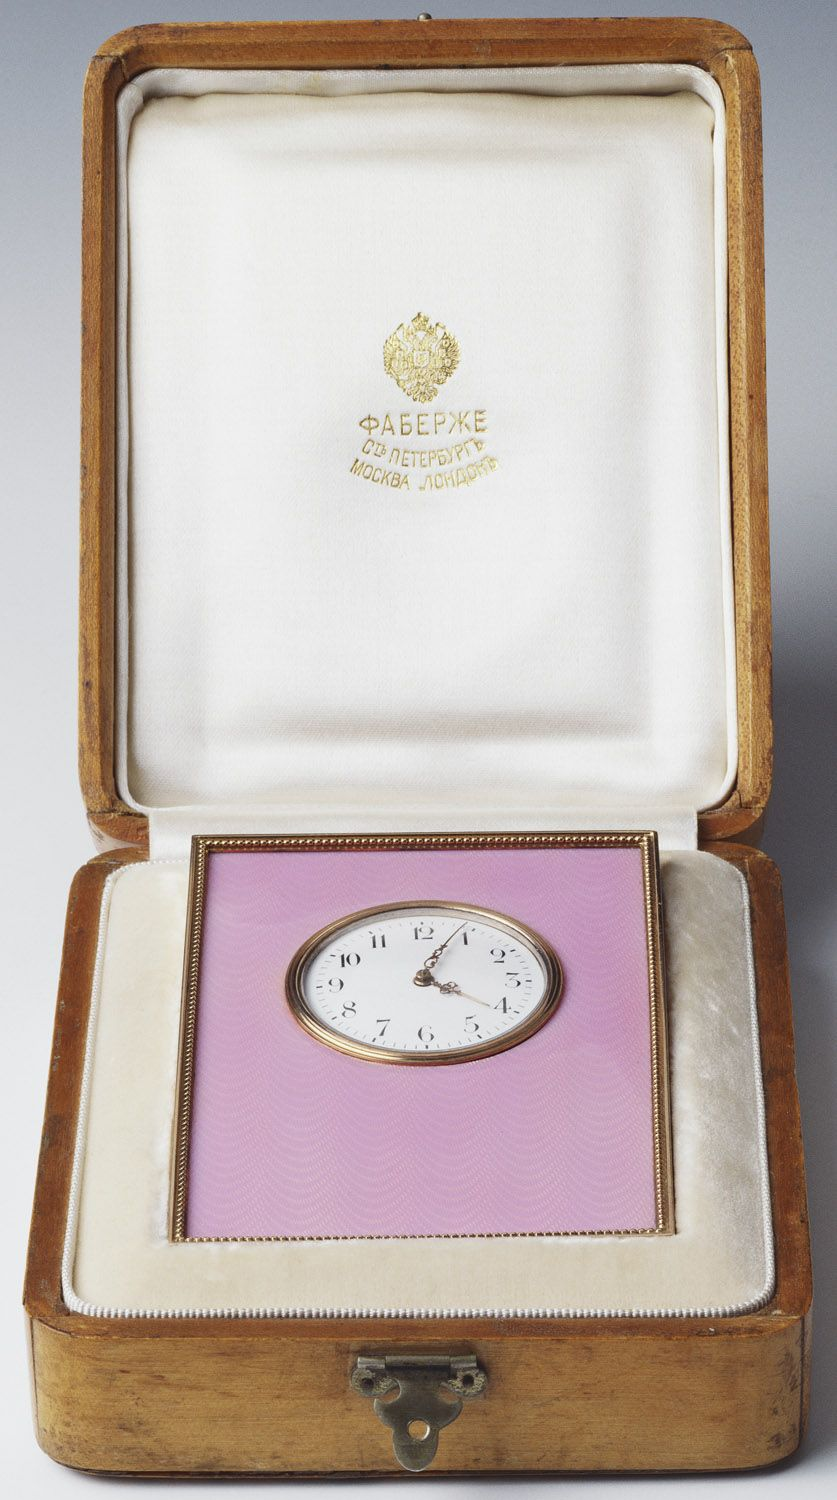 Fabergè - Desk clock, Creator: Henrik Emanuel Wigström ) (workmaster). ca, 1903 - 1913. Rectangular strut desk clock of gold with pink guilloché enamel, the gold mounted bezel contains a white enamel face with black arabic numerals, pierced gold hands; the whole has an ivory back. This clock retains its original holly wood box, lined with silk and velvet. Mark of Henrik Wigström; gold mark of 56 zolotniks and silver mark of 88 and 91 zolotniks (1908-17); Fabergé in Cyrillic characters.